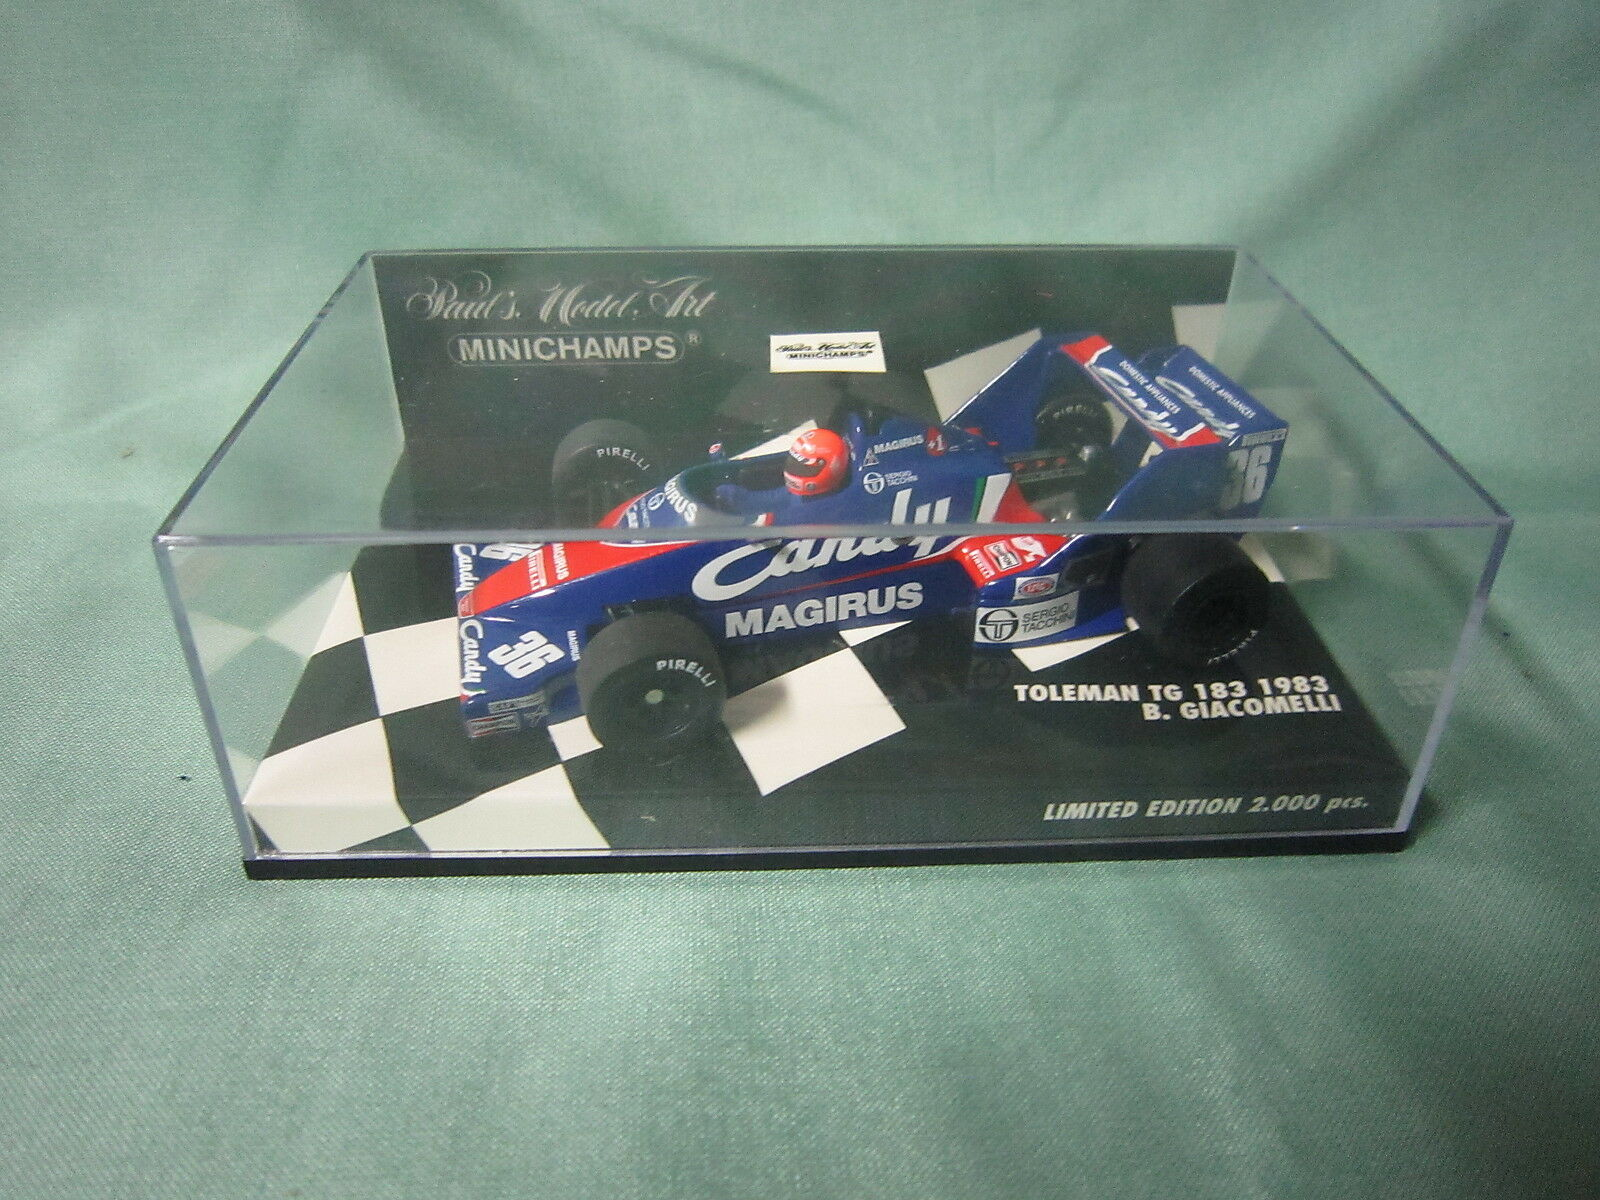 DV5930 MINICHAMPS TOLEMAN TG 183 1983 GIACOMELLI 430830036 CANDY Ed Lim 1 43